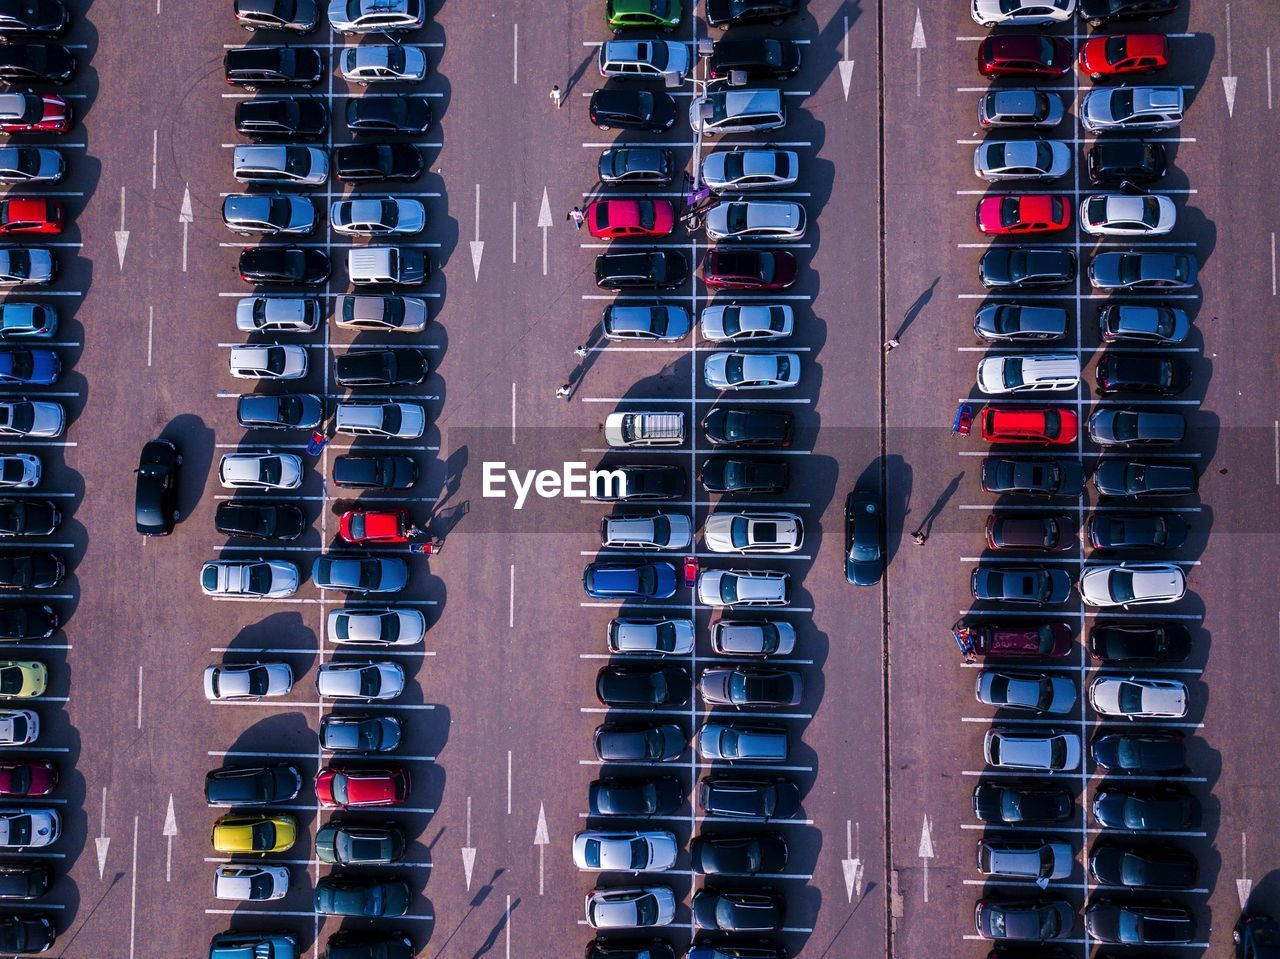 Aerial View Of Cars Parked At Parking Lot